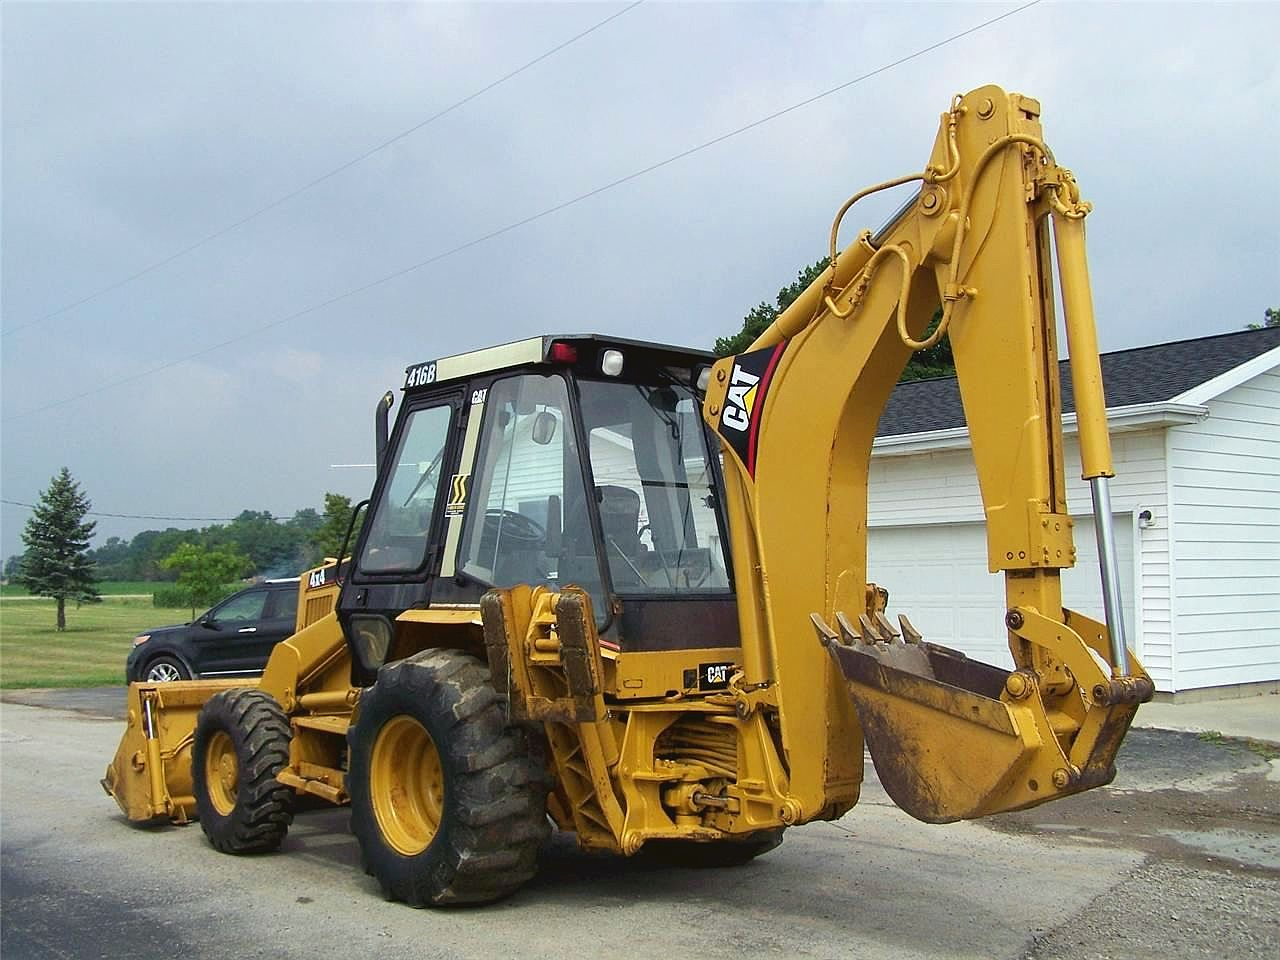 Caterpillar 416 photo - 2